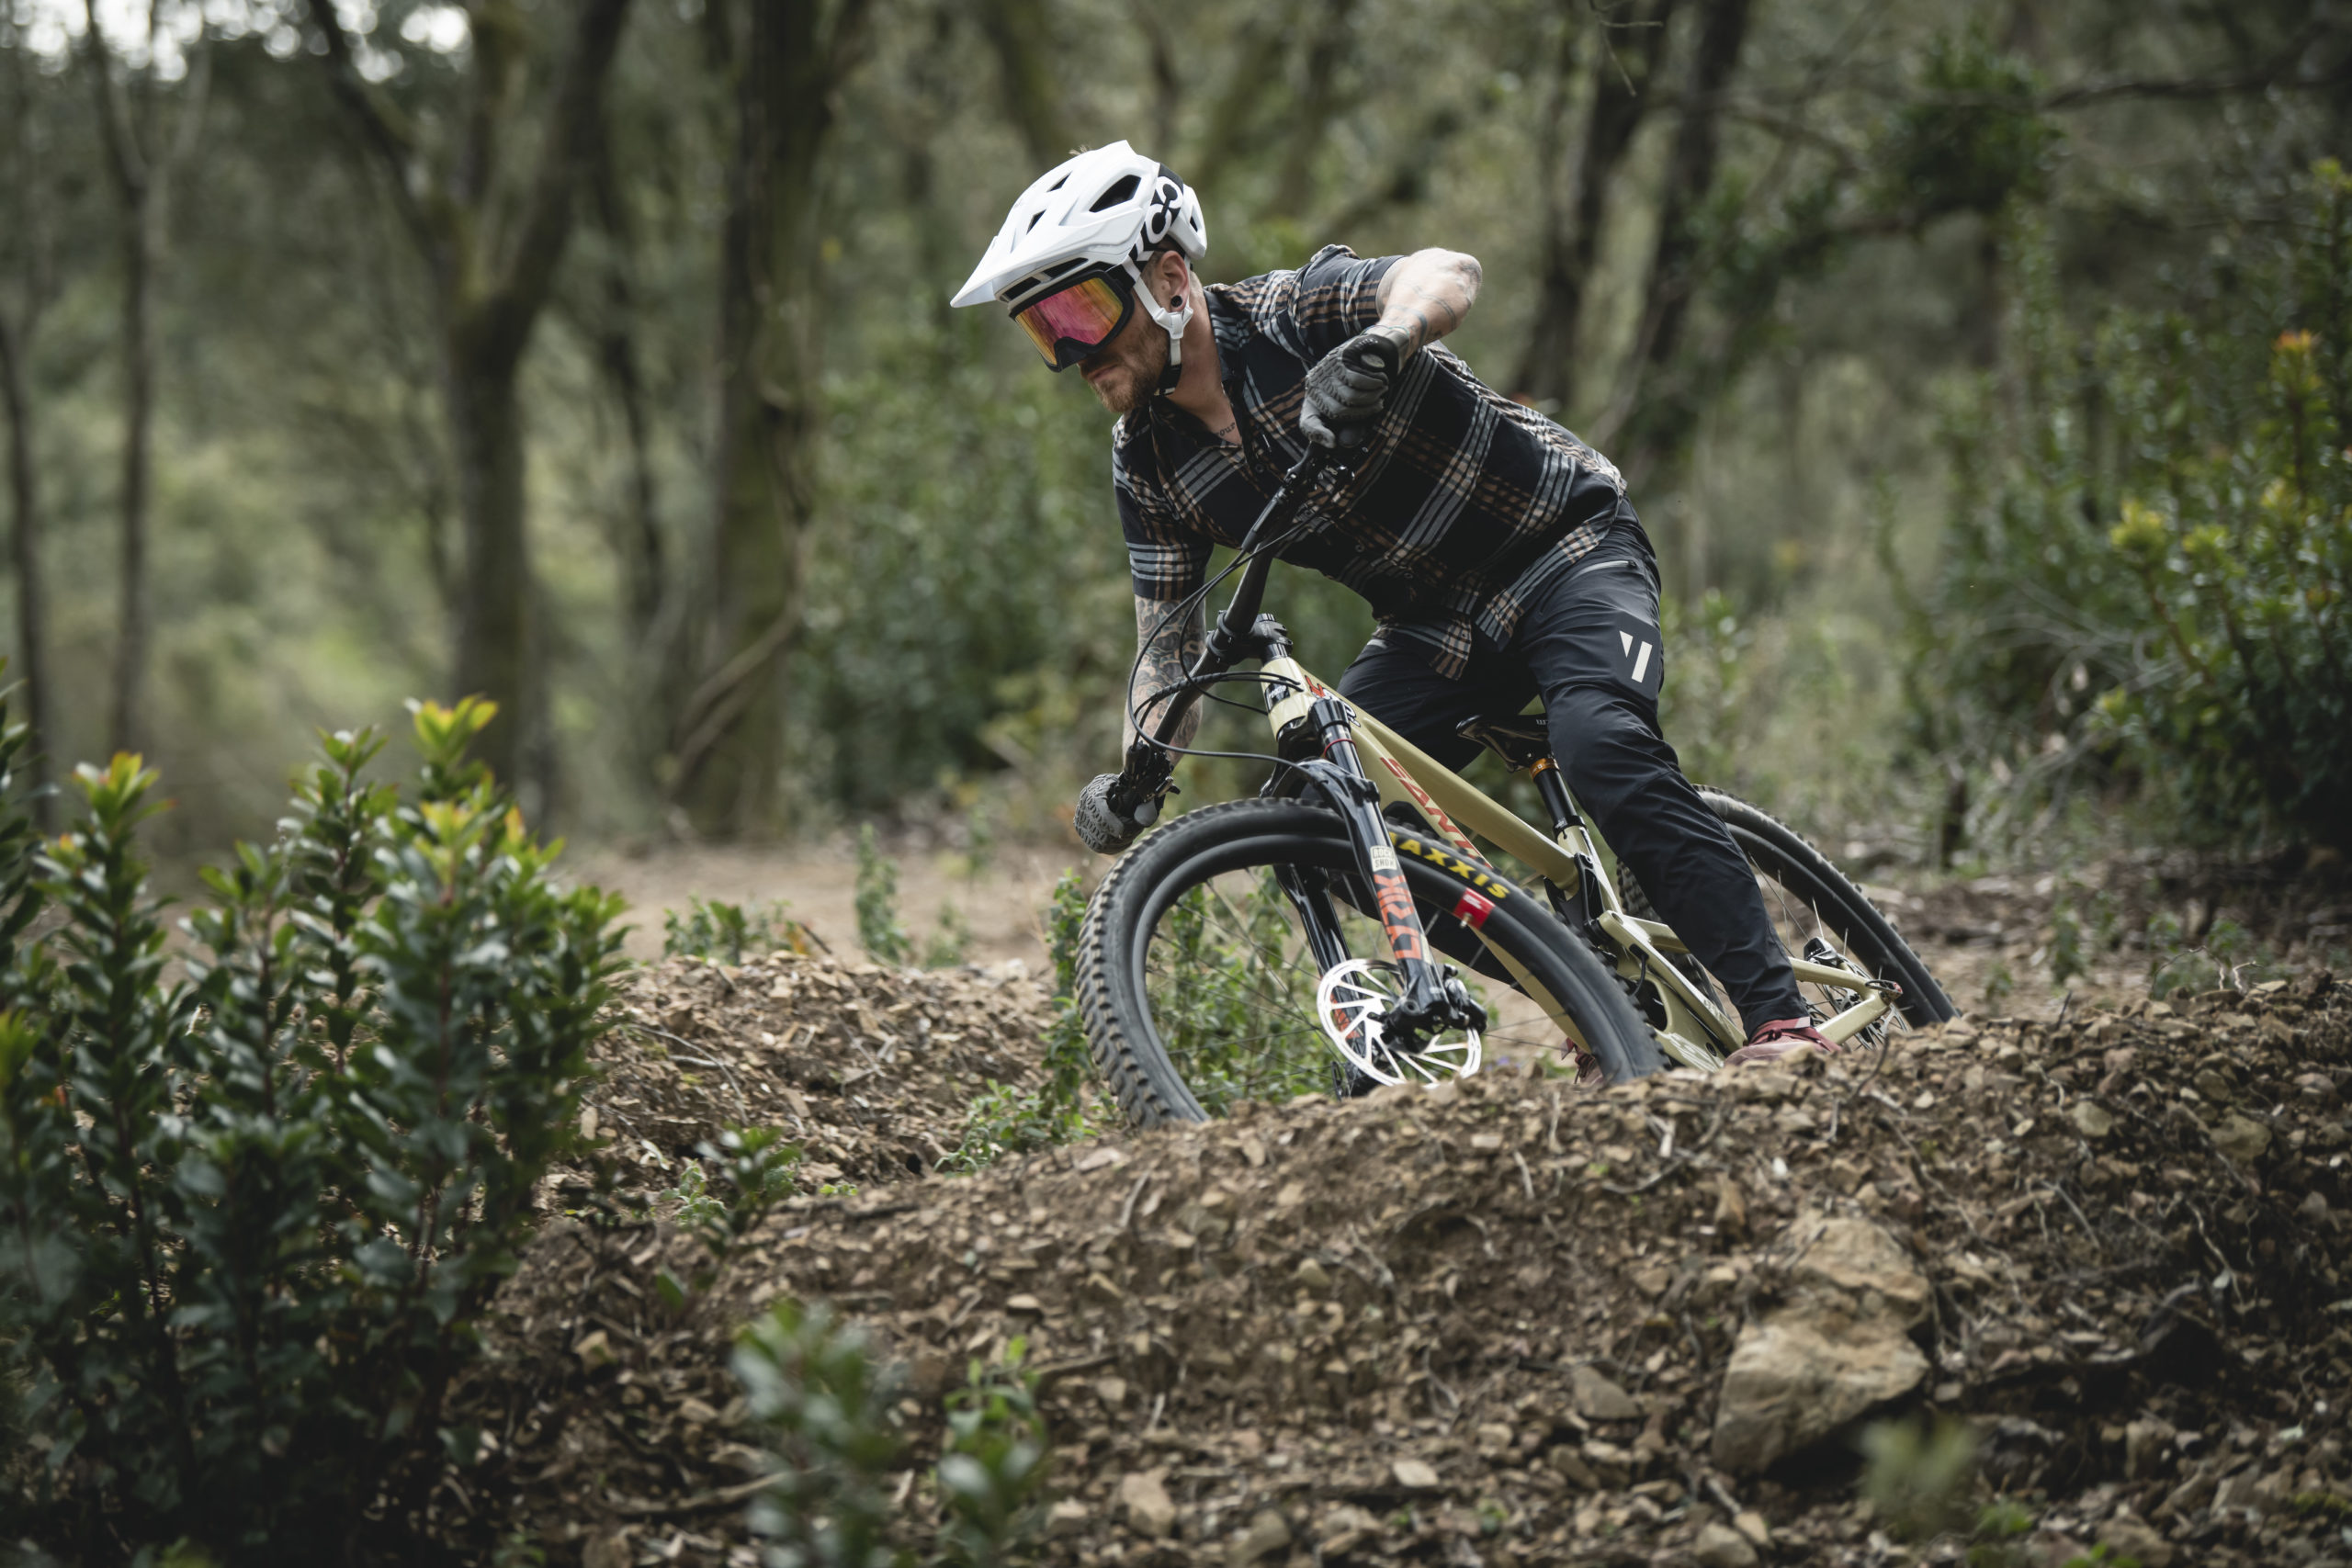 Tuscan Trails in Massa Marittima, Italy, are Some of the Country's Most Well Maintained [Worldwide Shredlist] - Singletracks Mountain Bike News